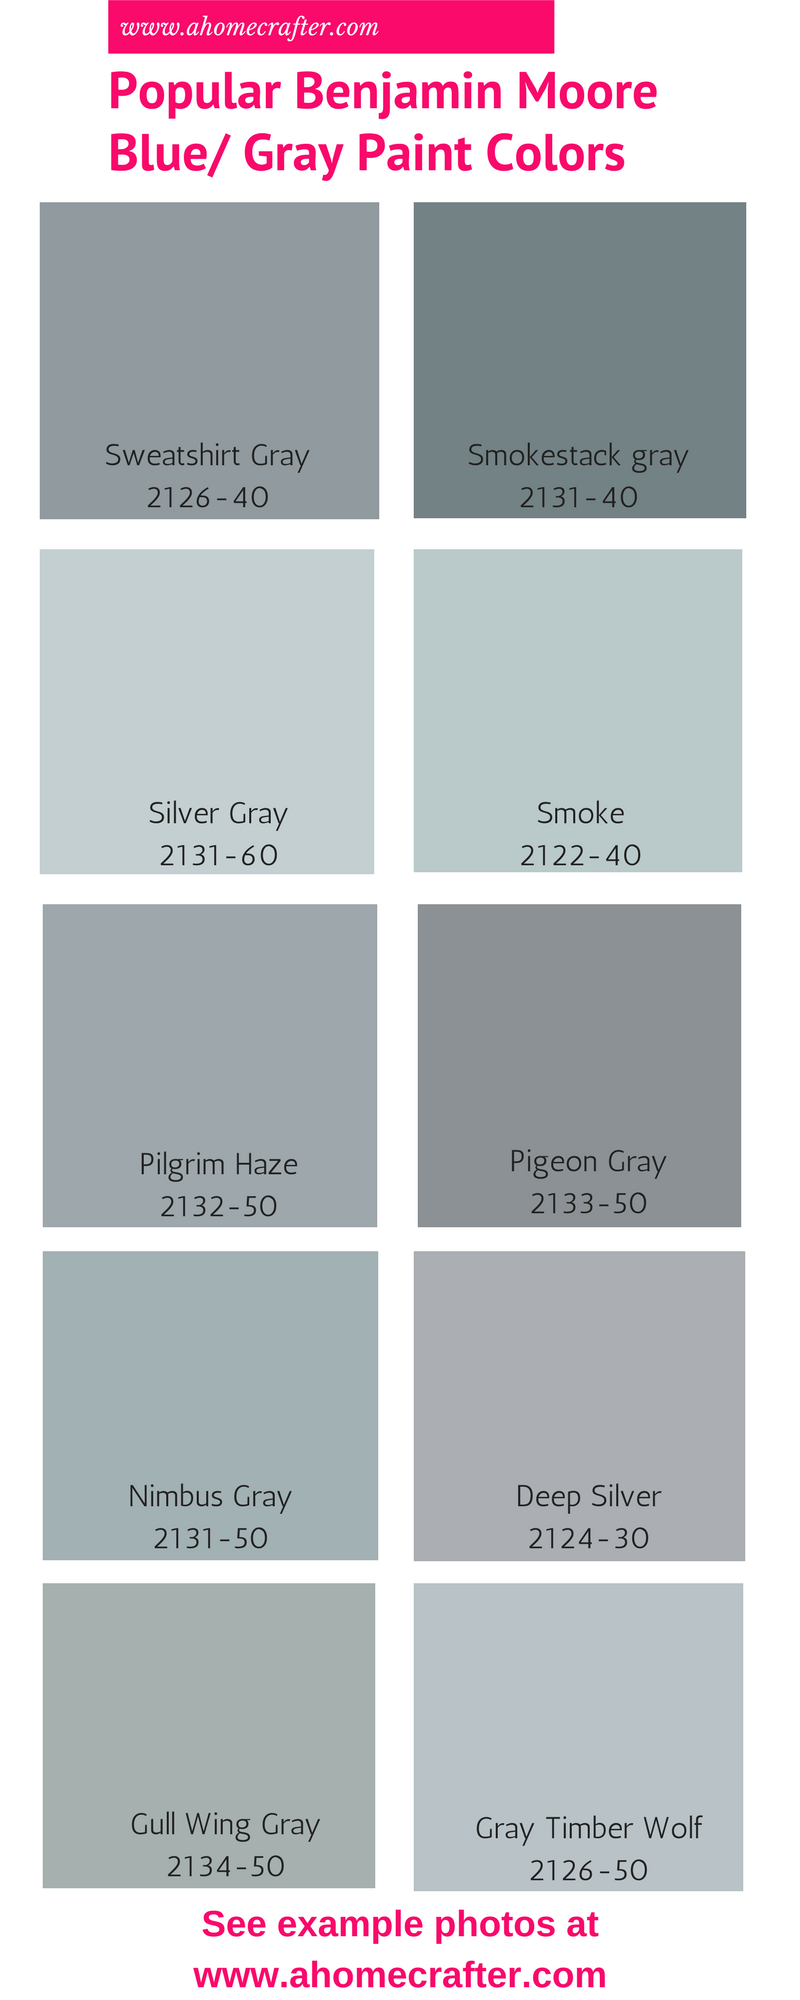 Greyish Blue Paint smoke or gray timber wolf | dylan | pinterest | kids room design